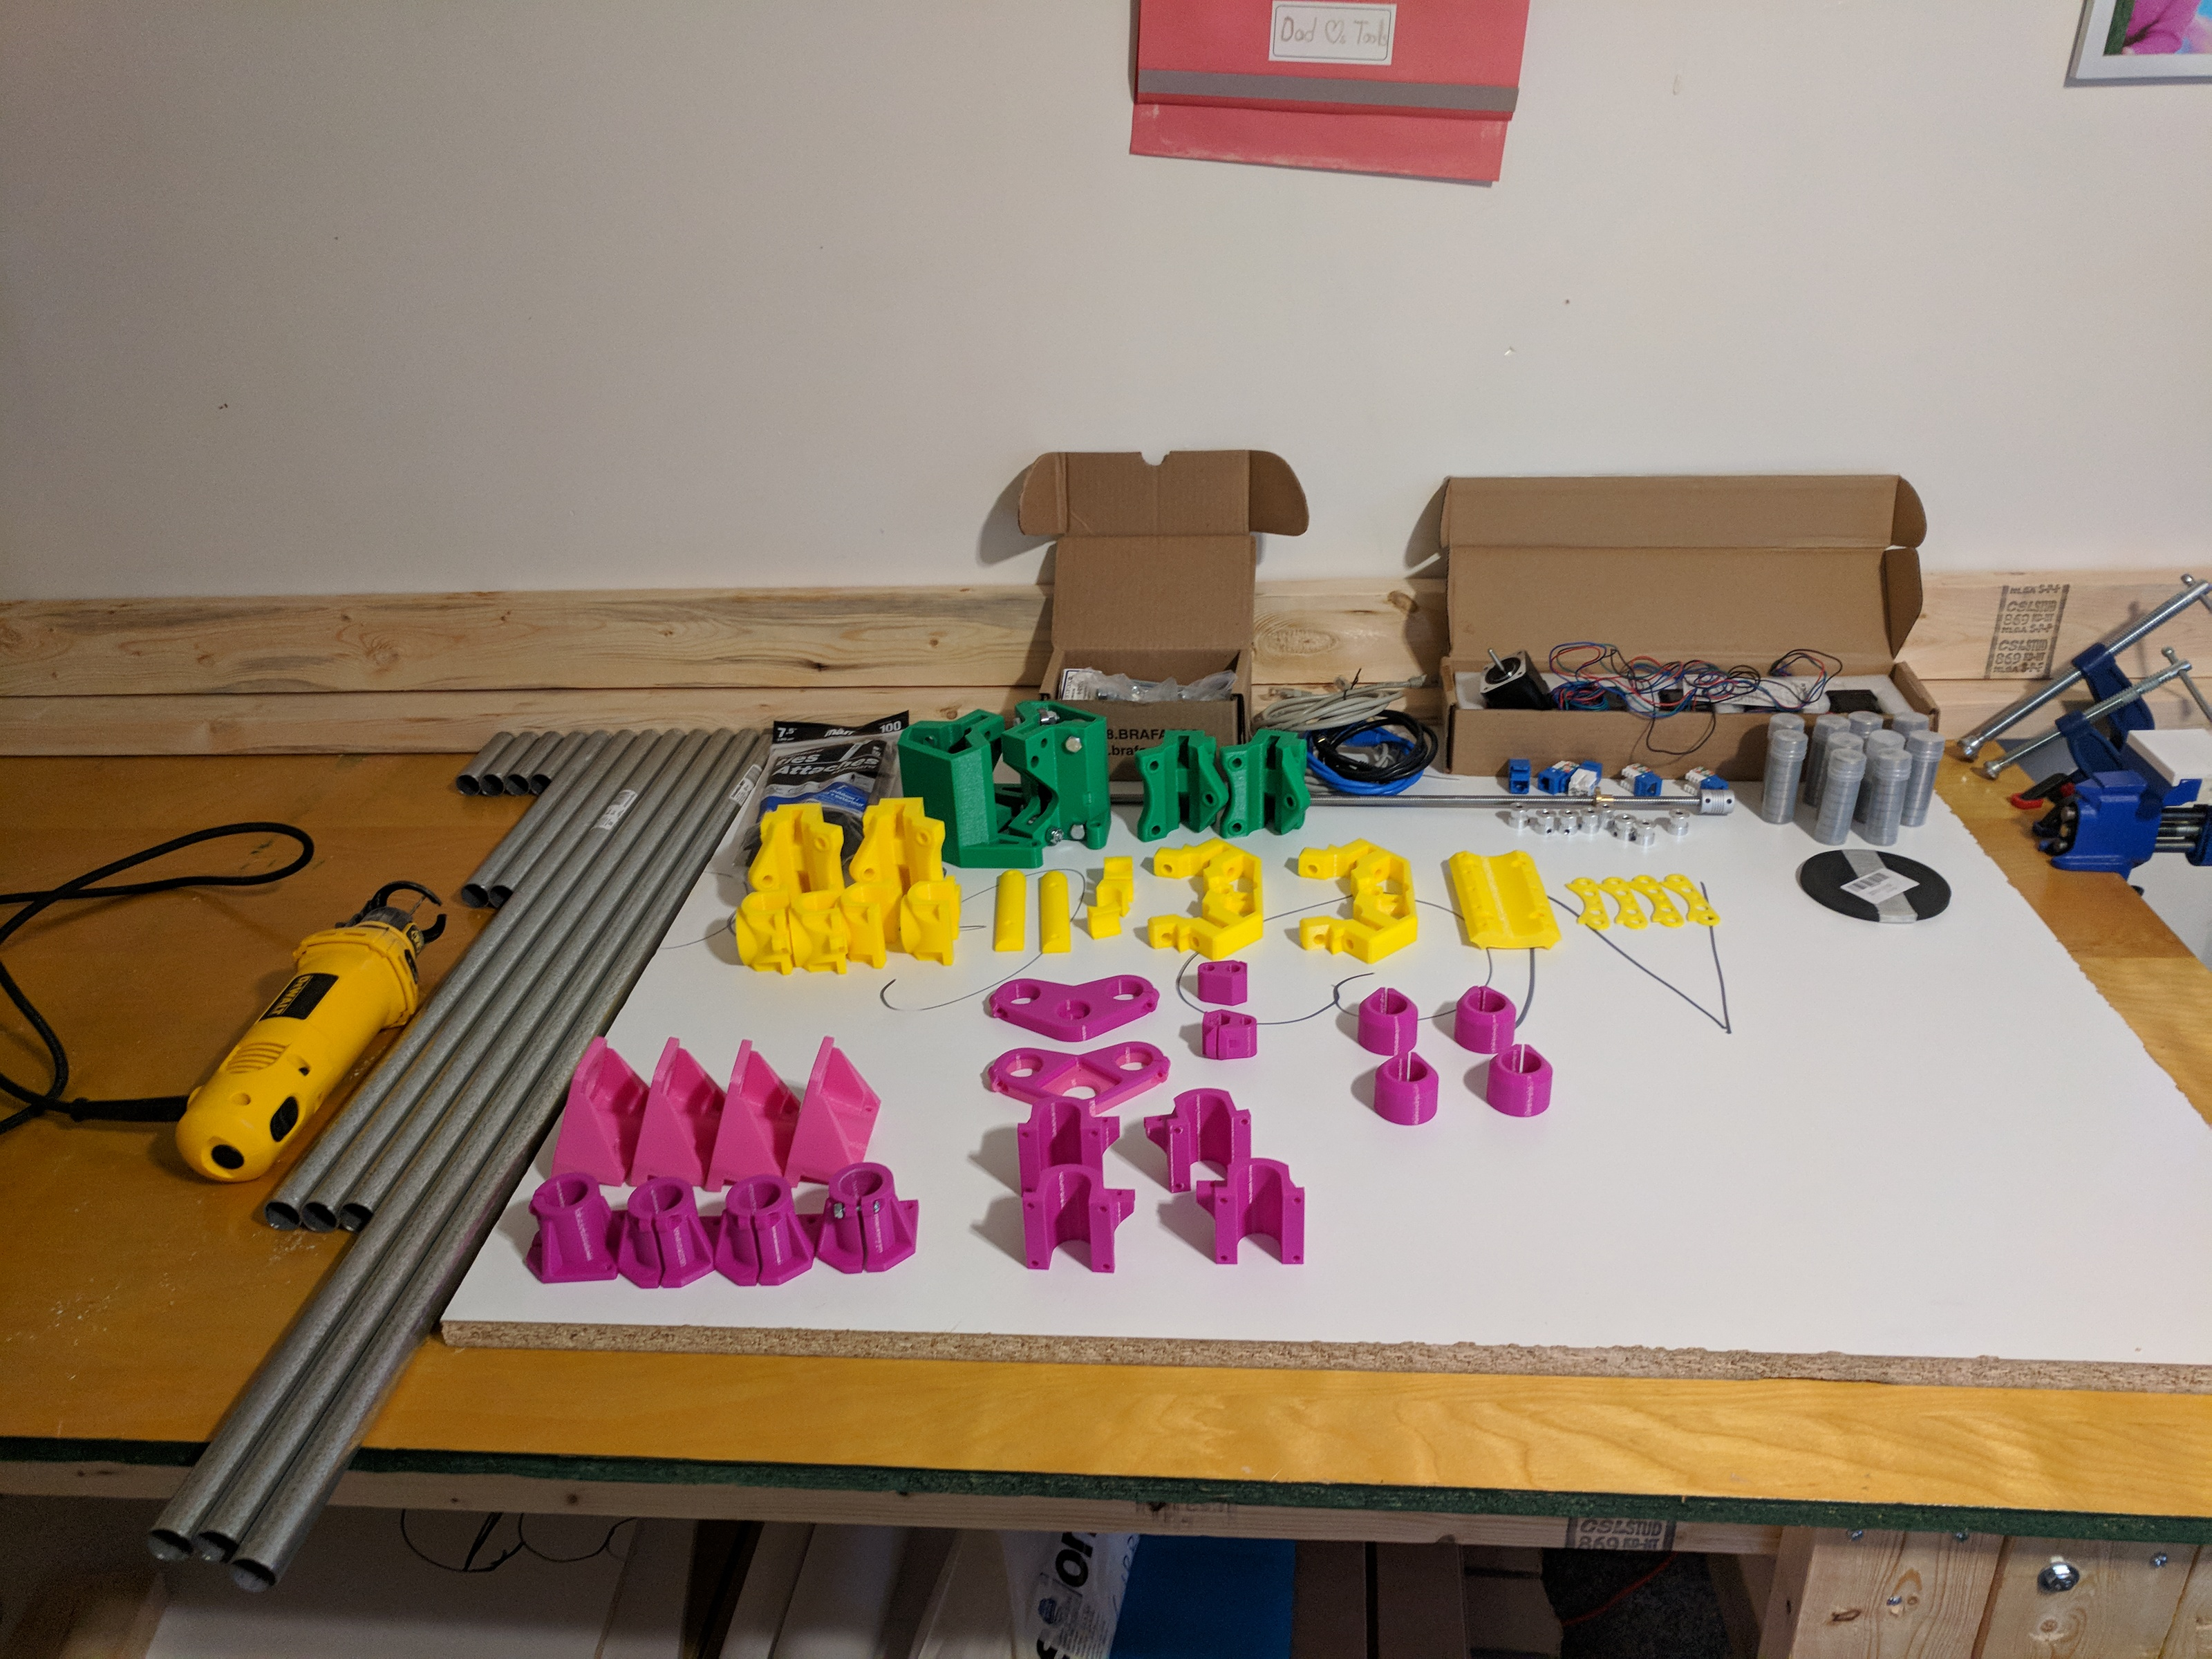 All the parts for my MPCNC